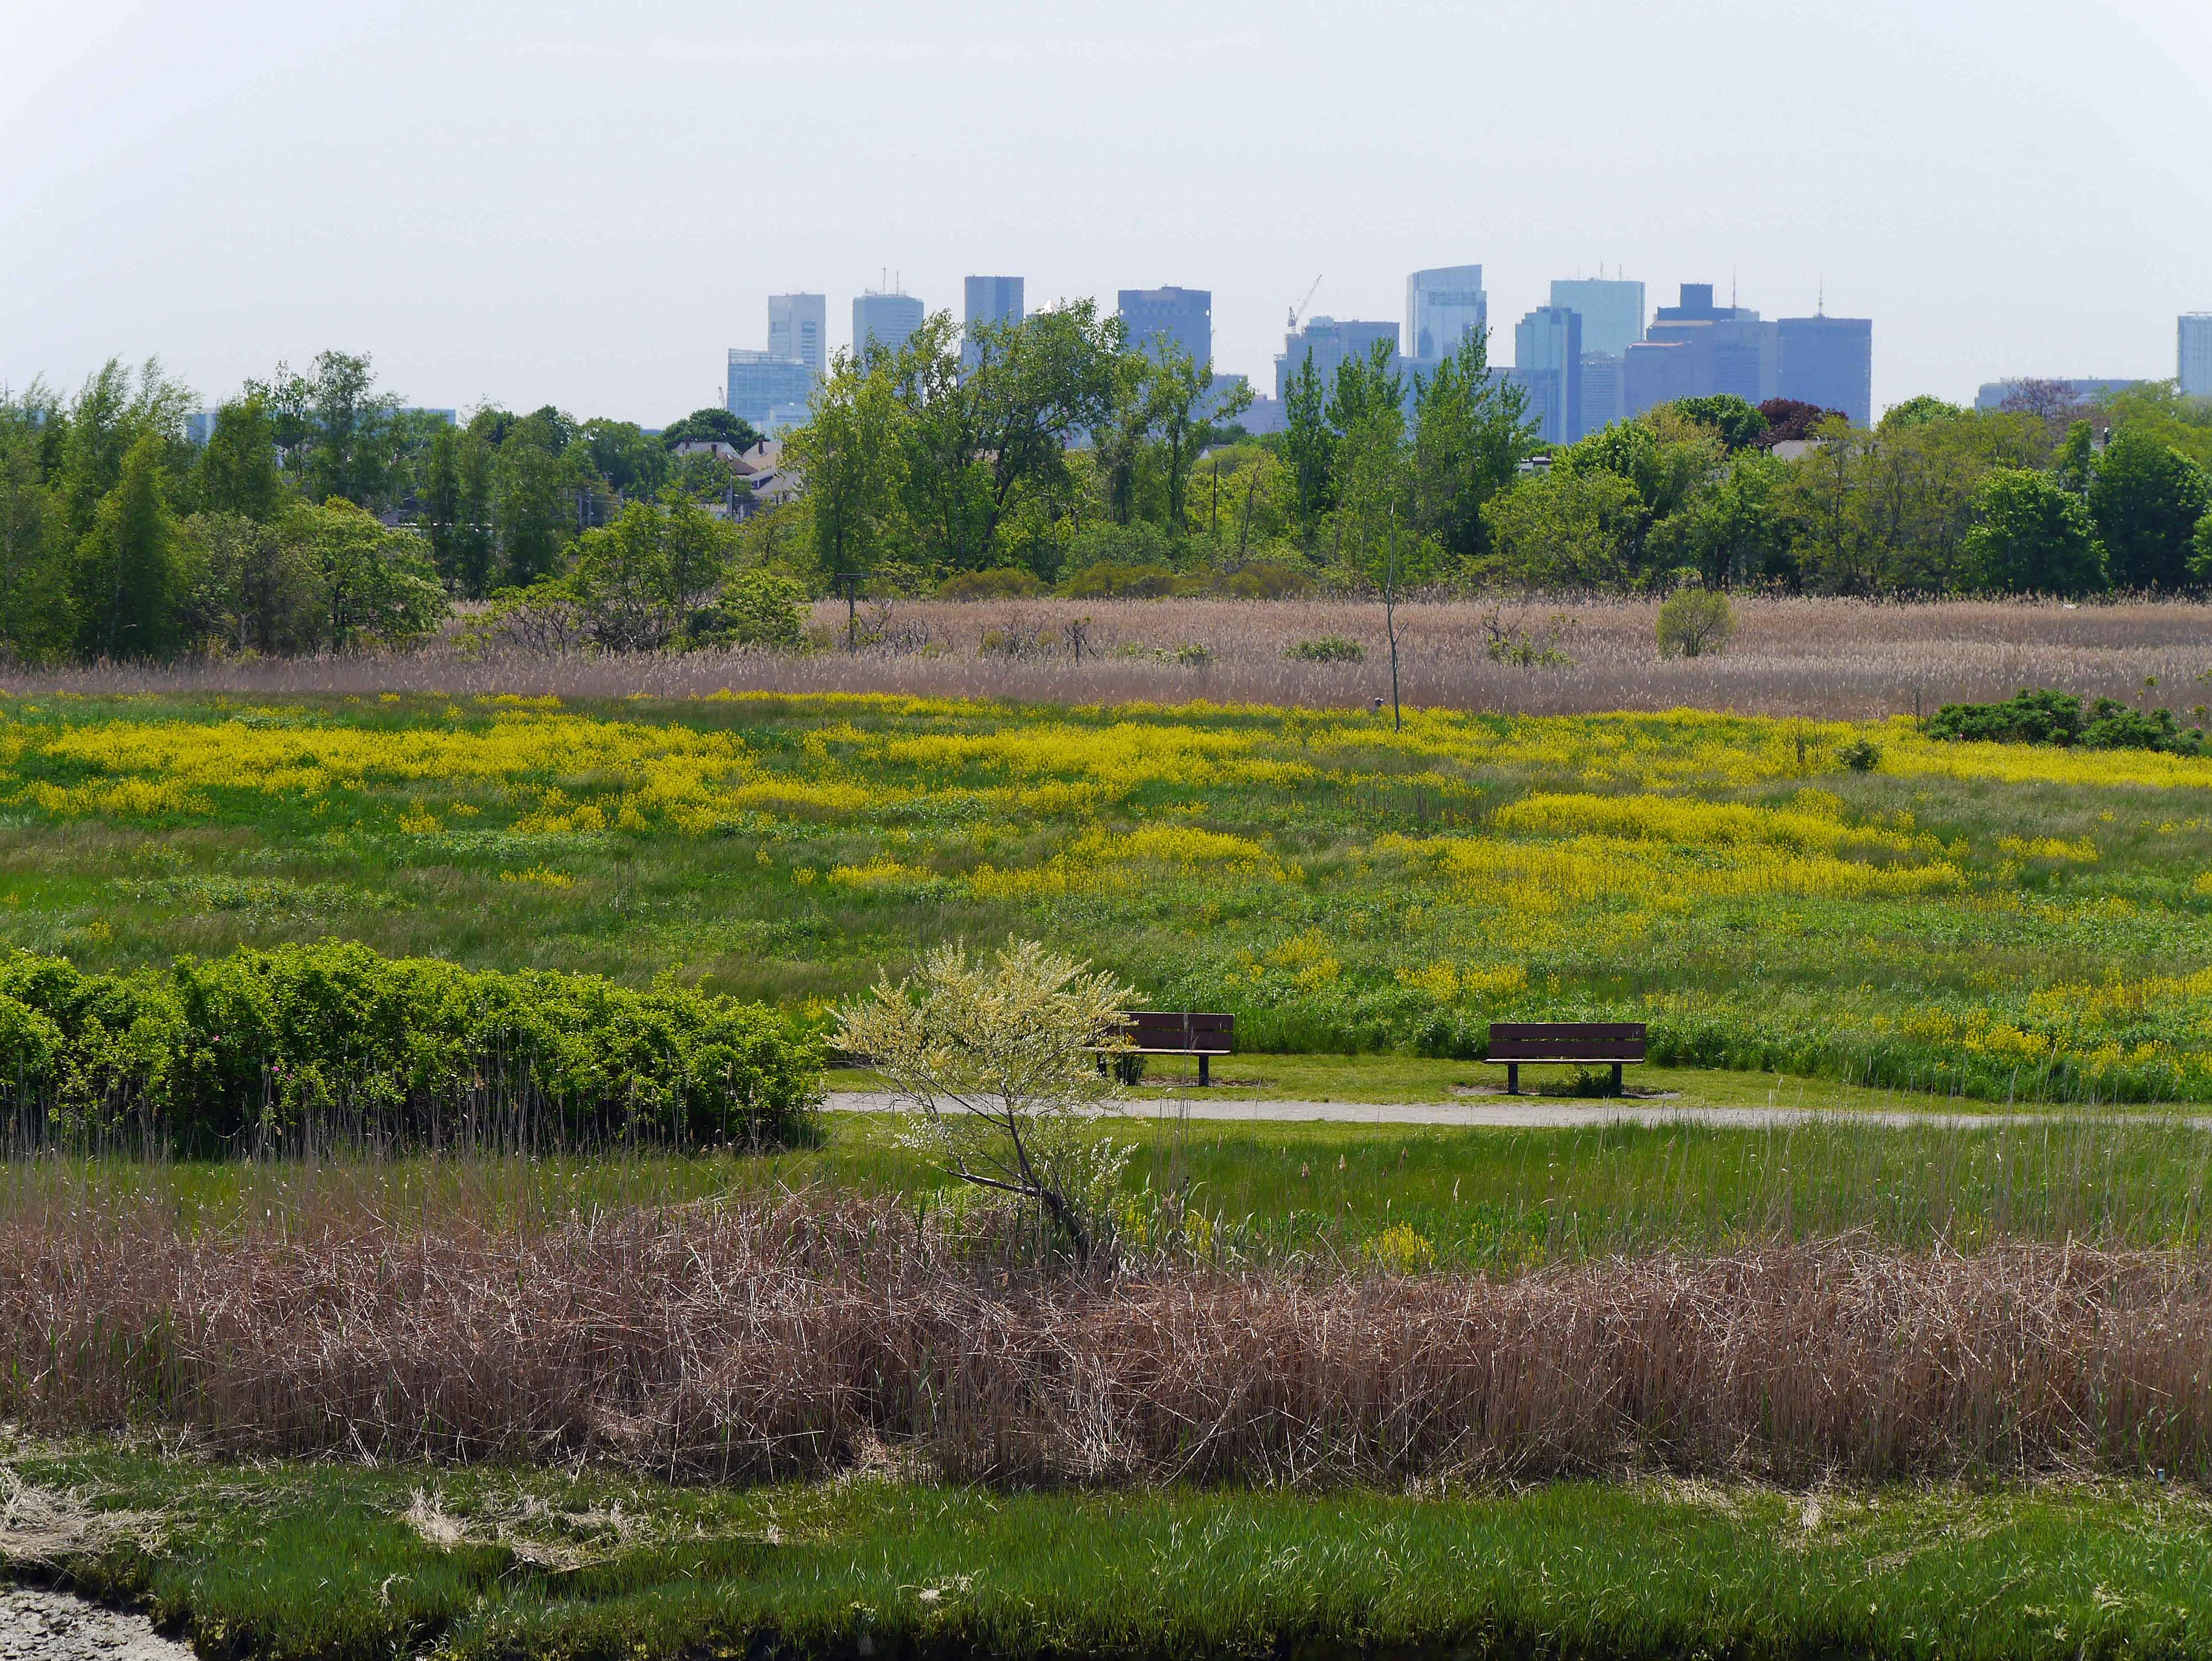 Belle Isle Marsh is a thriving maze of narrow canals interspersed with bog and marsh vegetation.